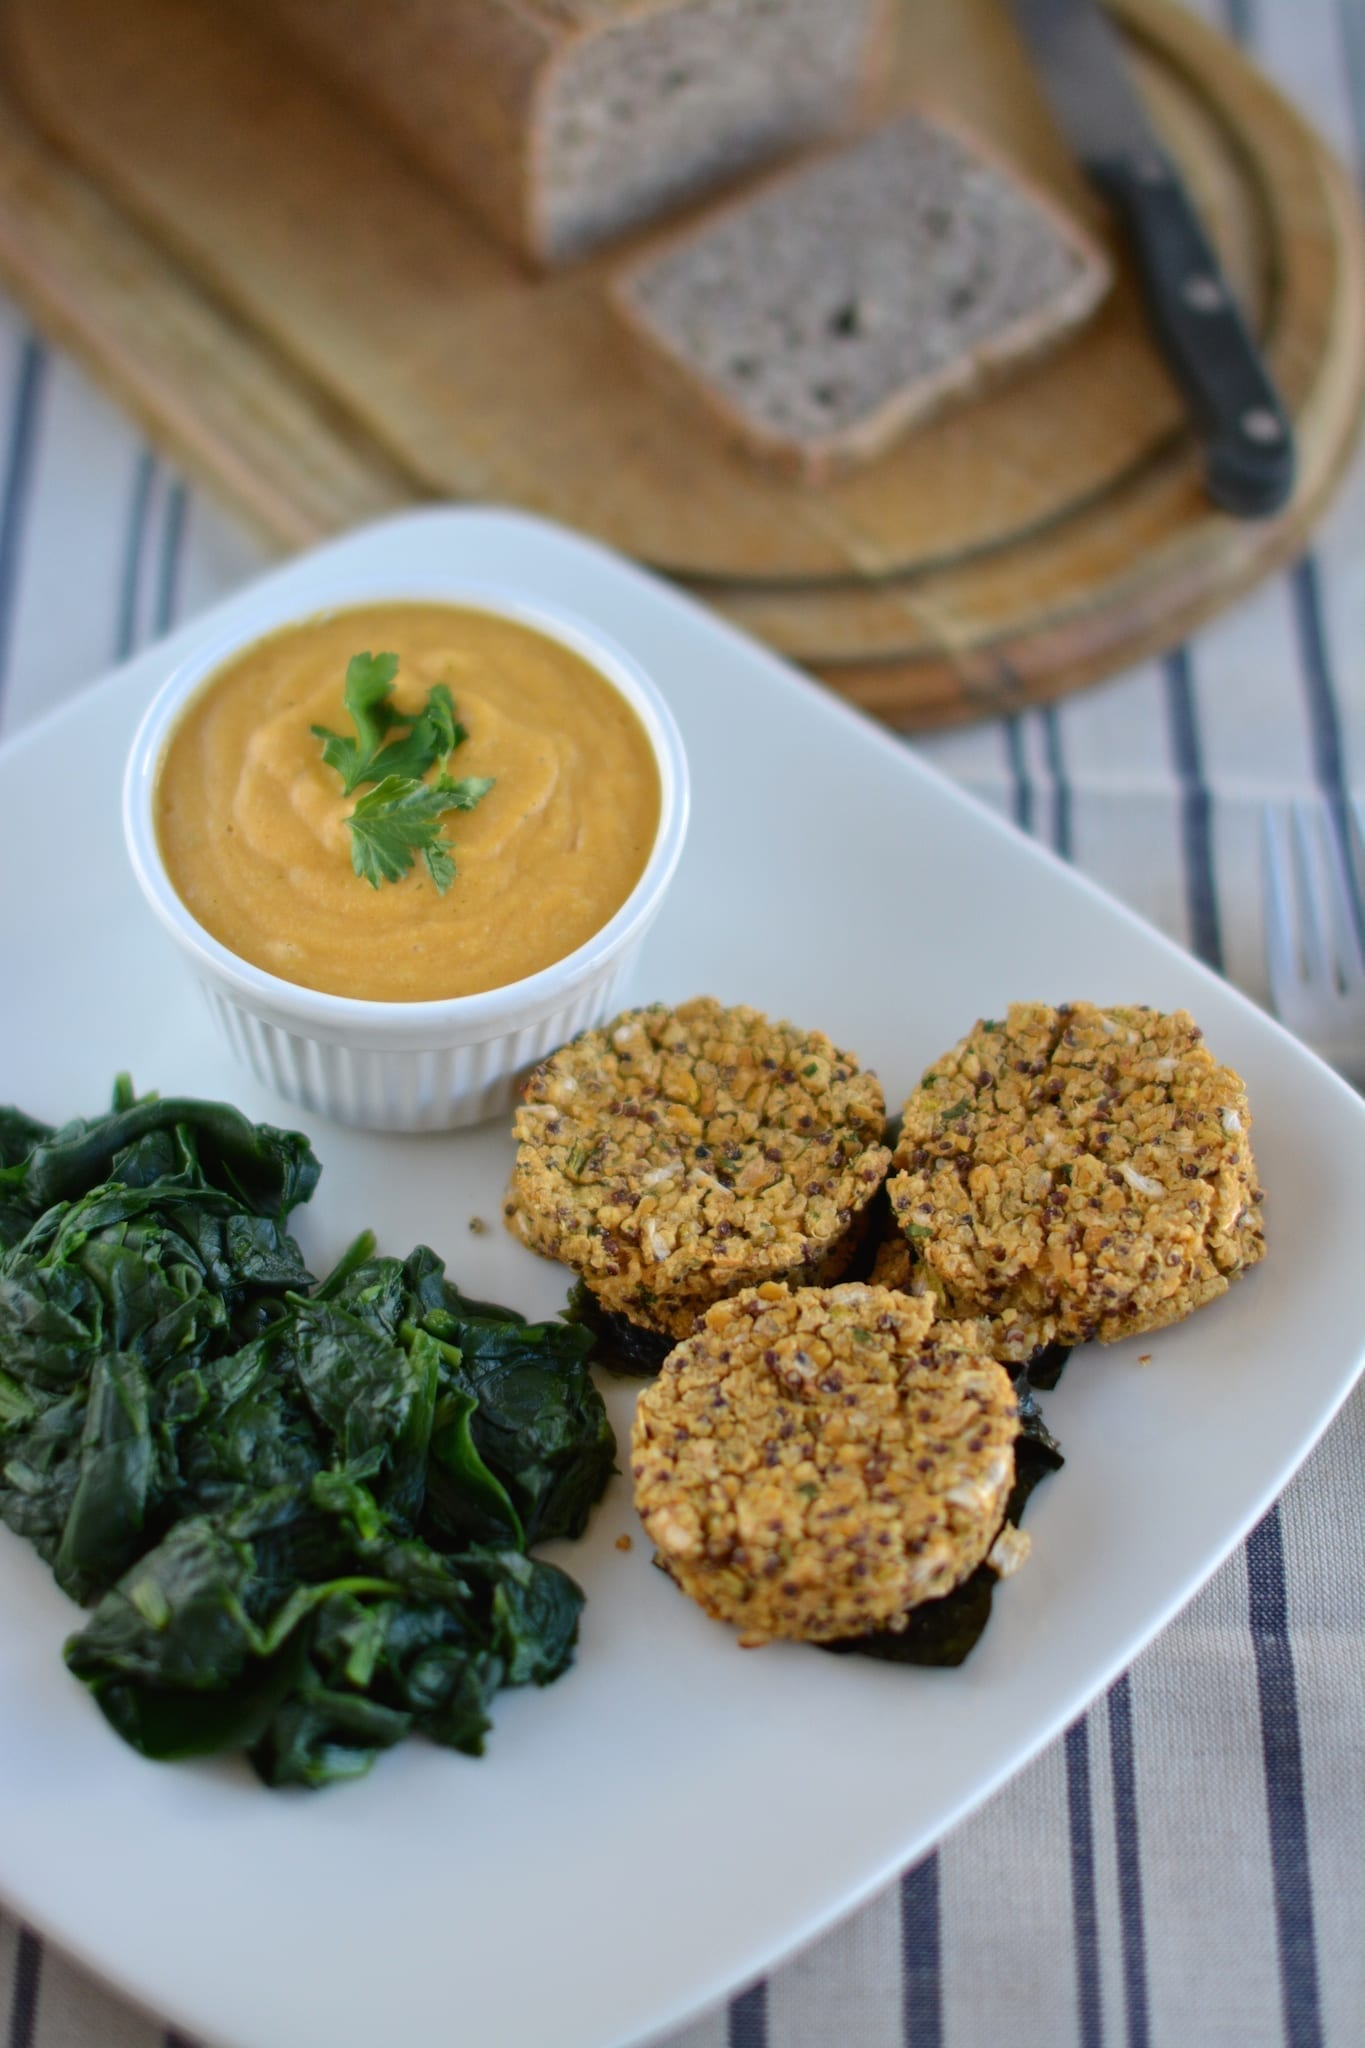 Quinoa Chickpea Burgers with Vegan Cheese Sauce